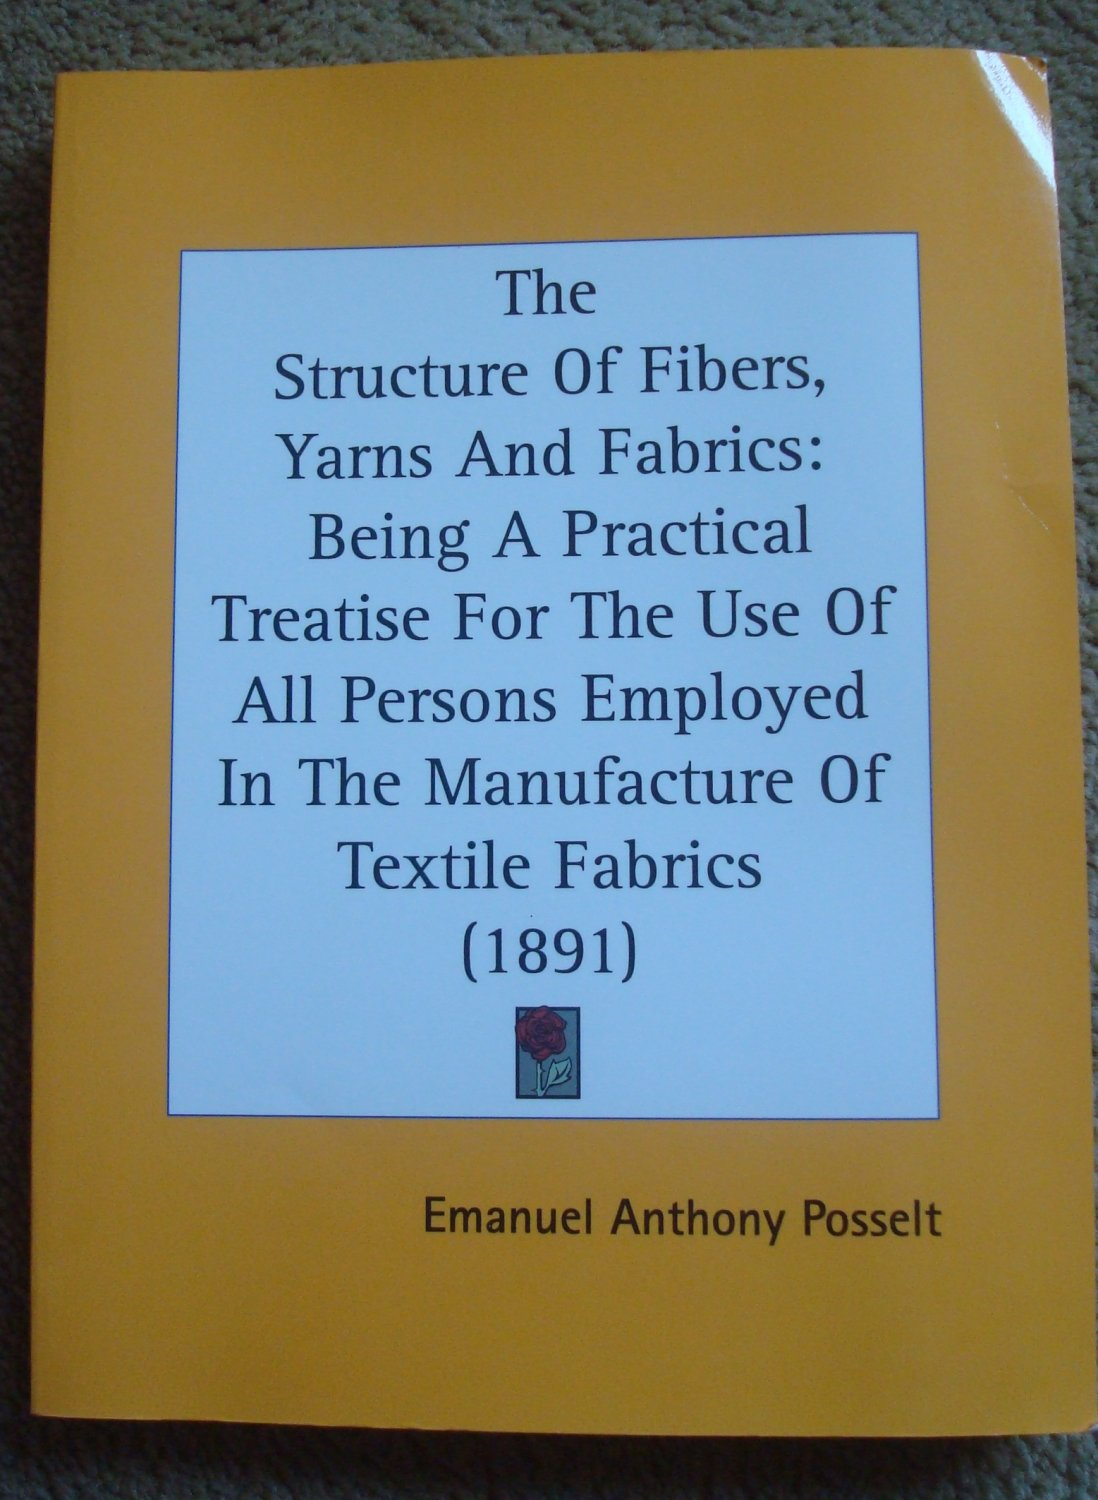 The Structure of Fibers, Yarns, and Fabrics